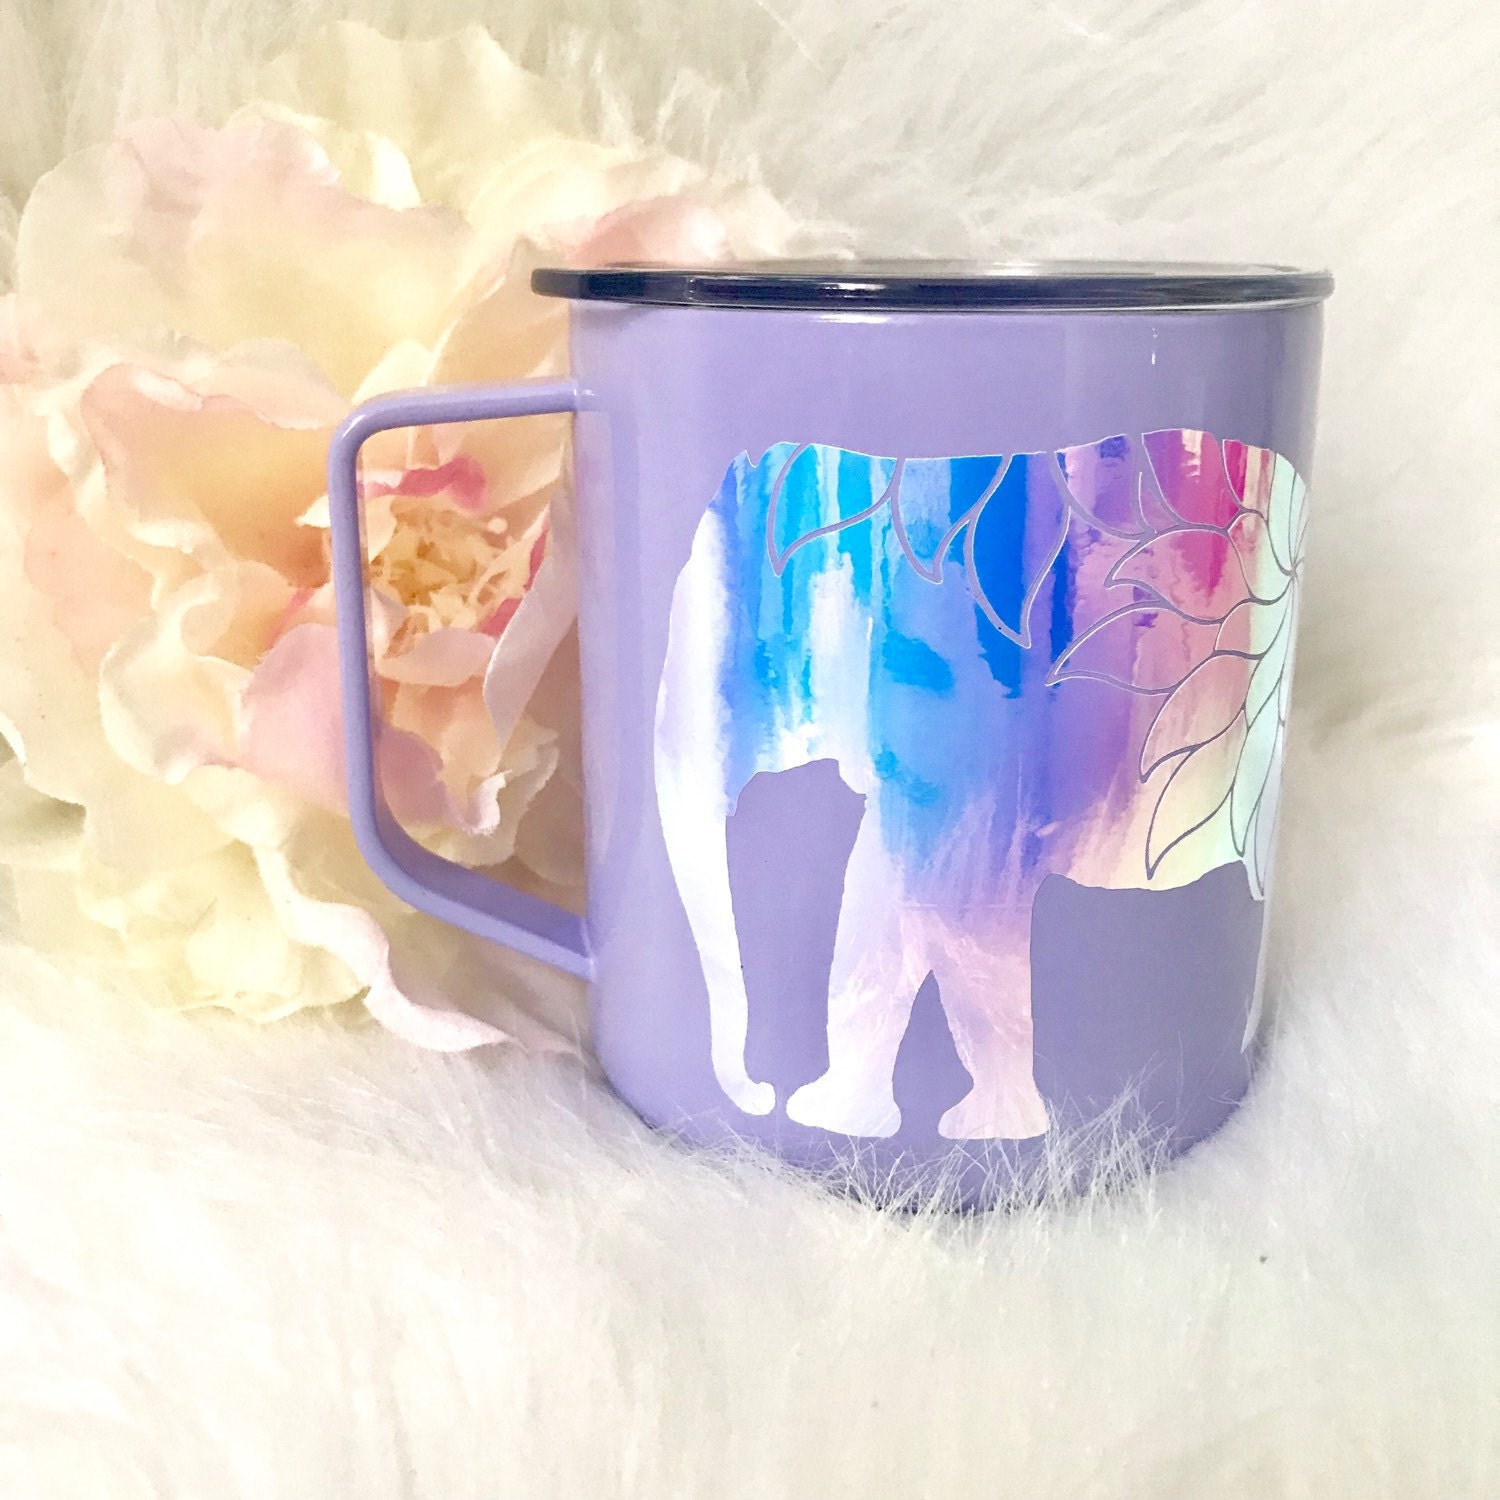 c9c7d131ef8 Updates from DAMFancyCreations on Etsy